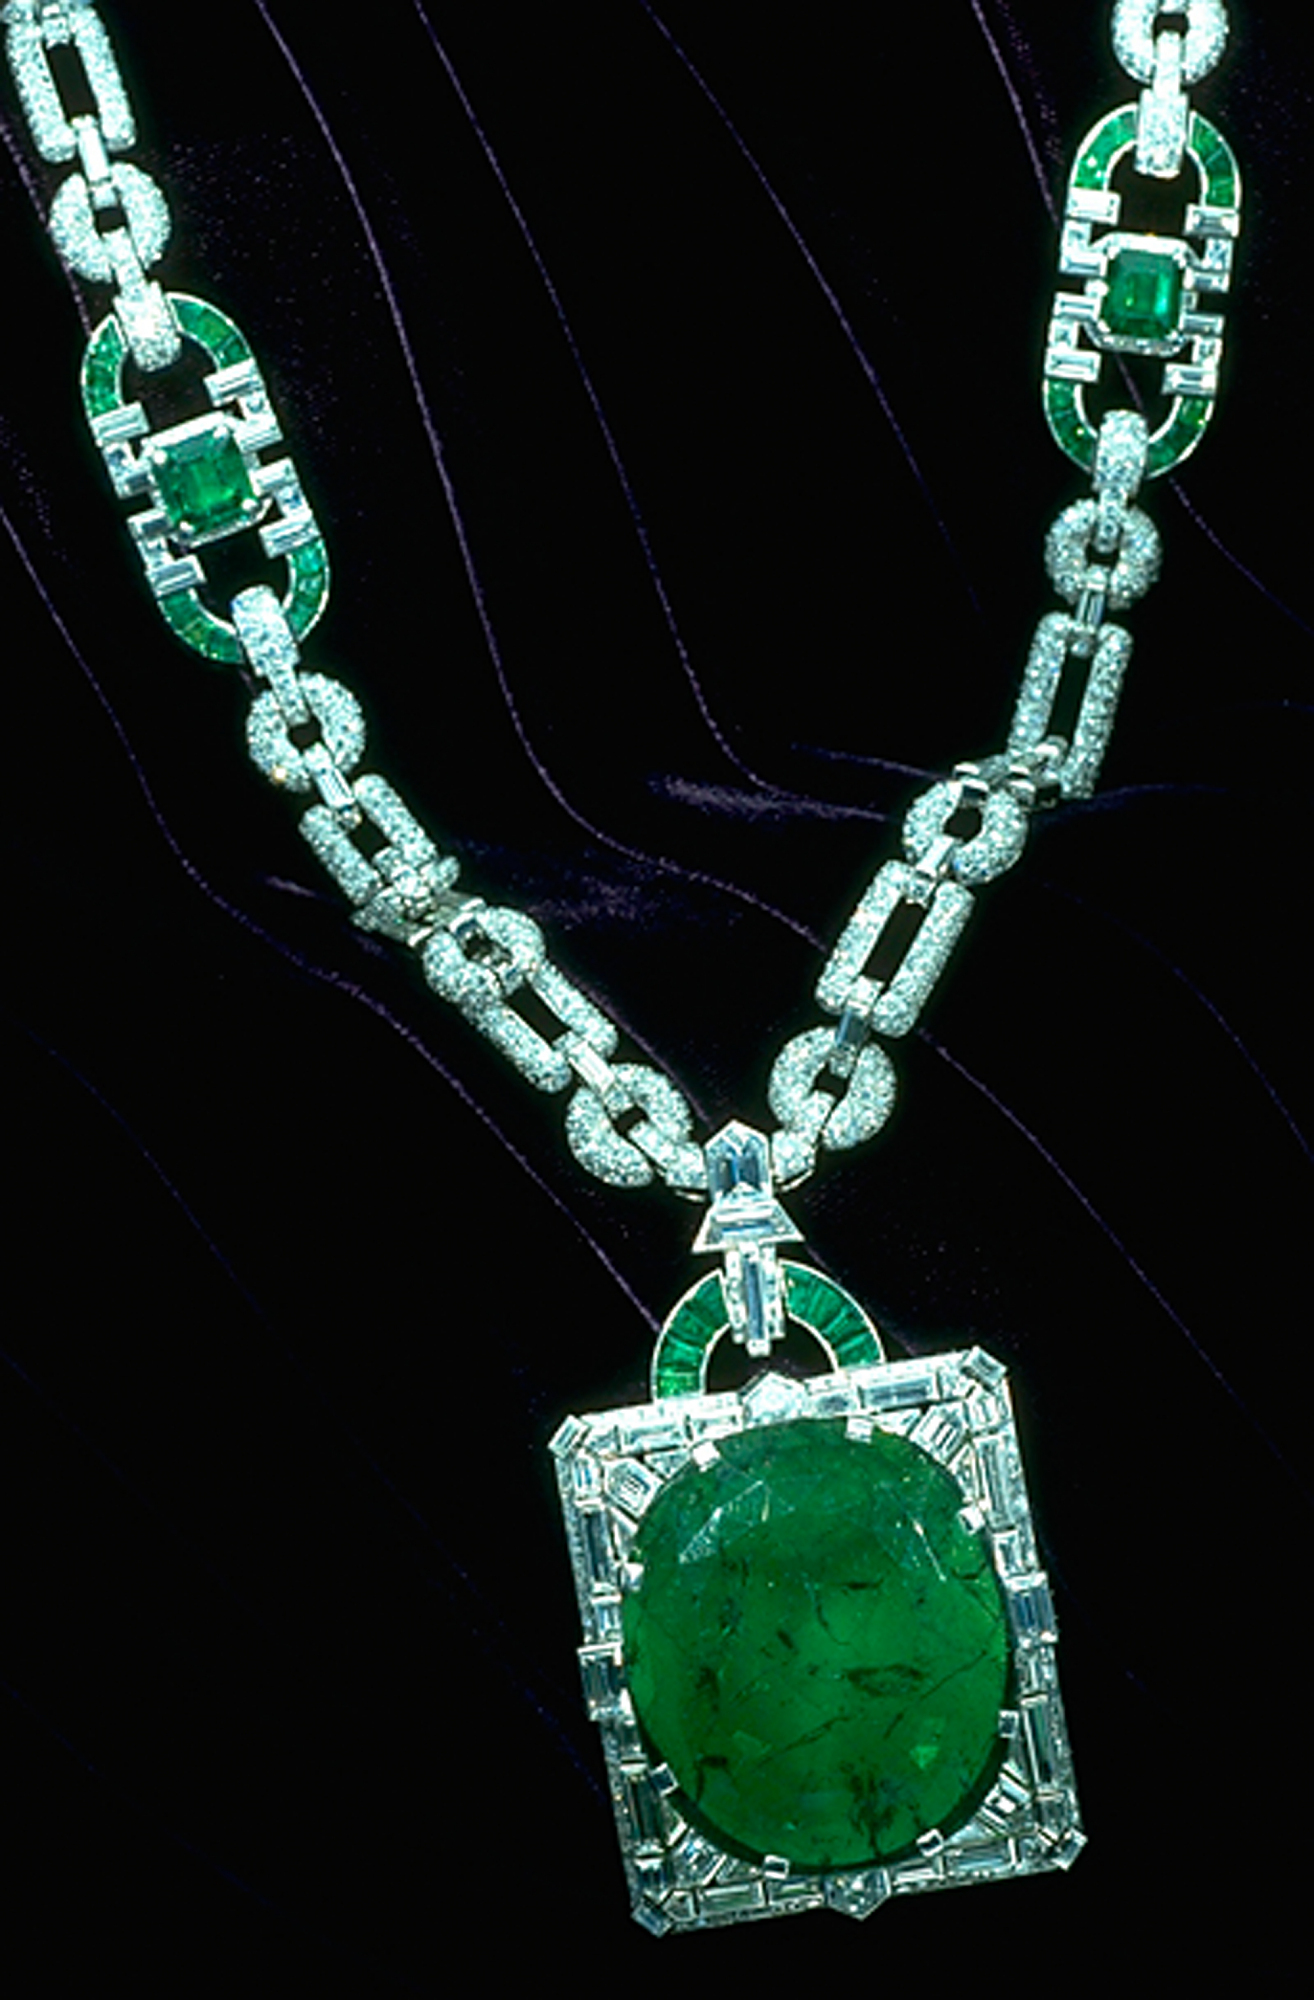 Mackay Emerald Necklace, by Clark, Chip, c. 2000, Smithsonian Archives - History Div, G9775_01.